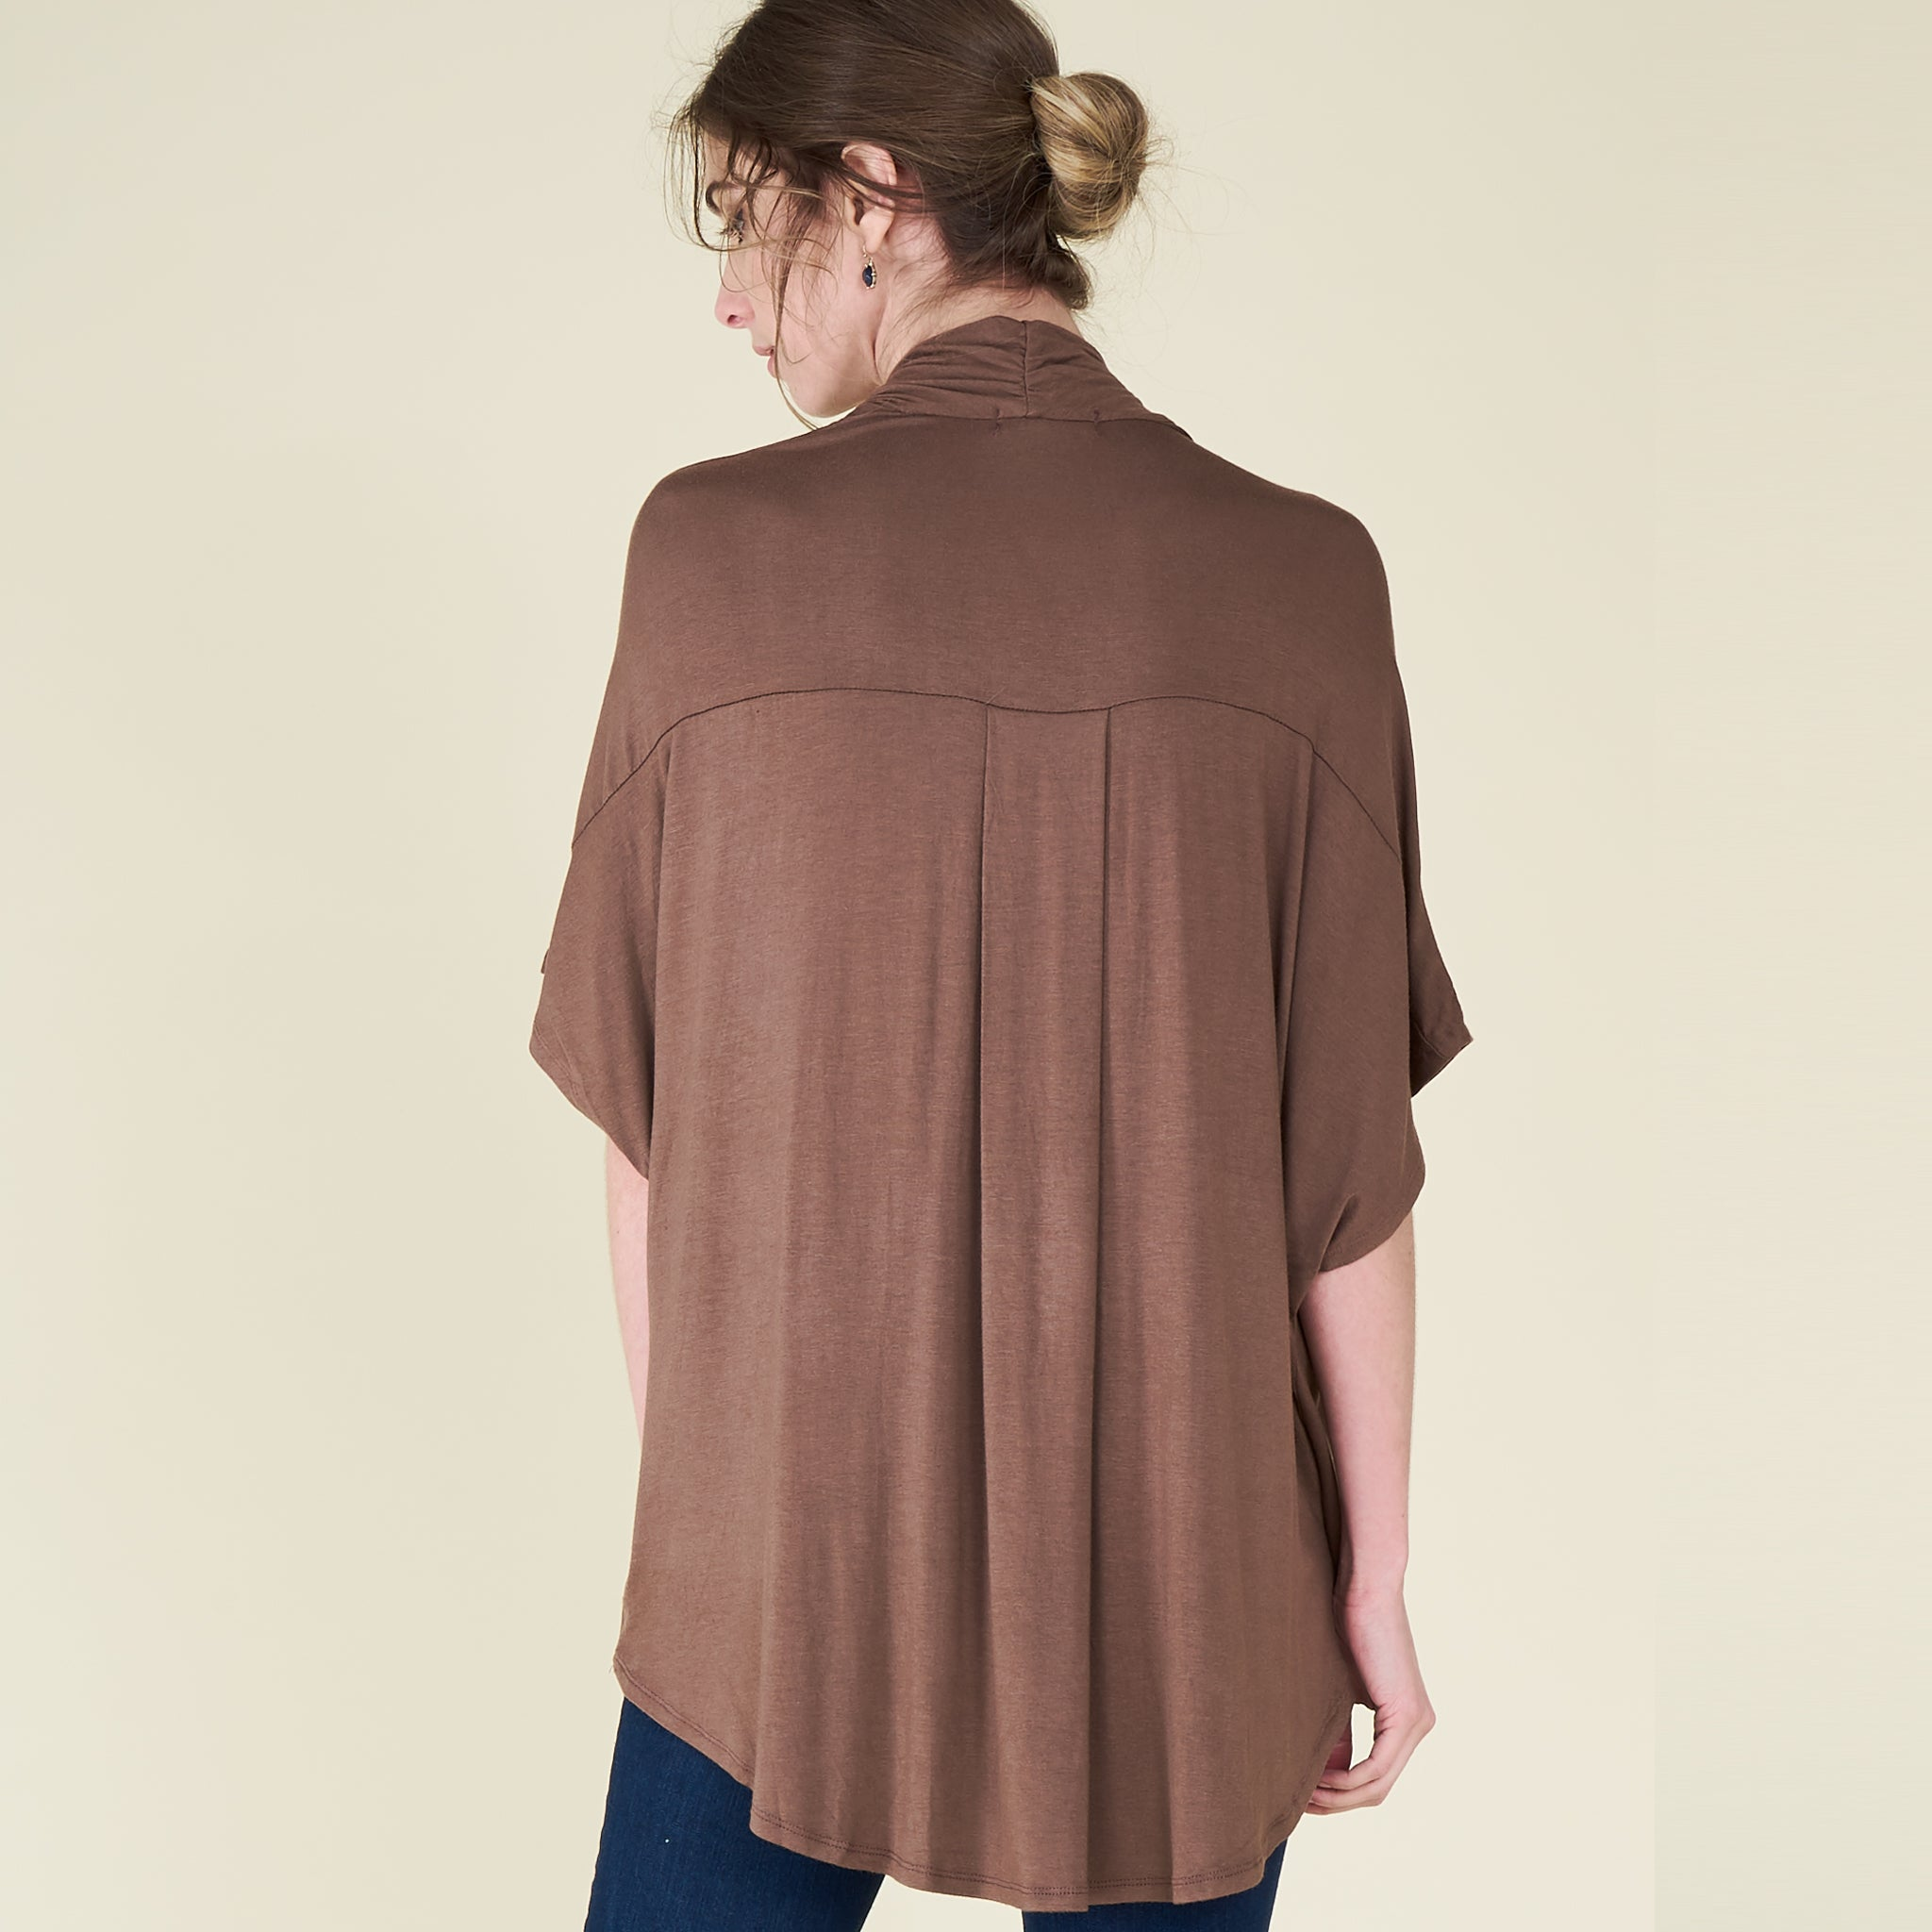 The Oversized Drape Top - Love, Kuza